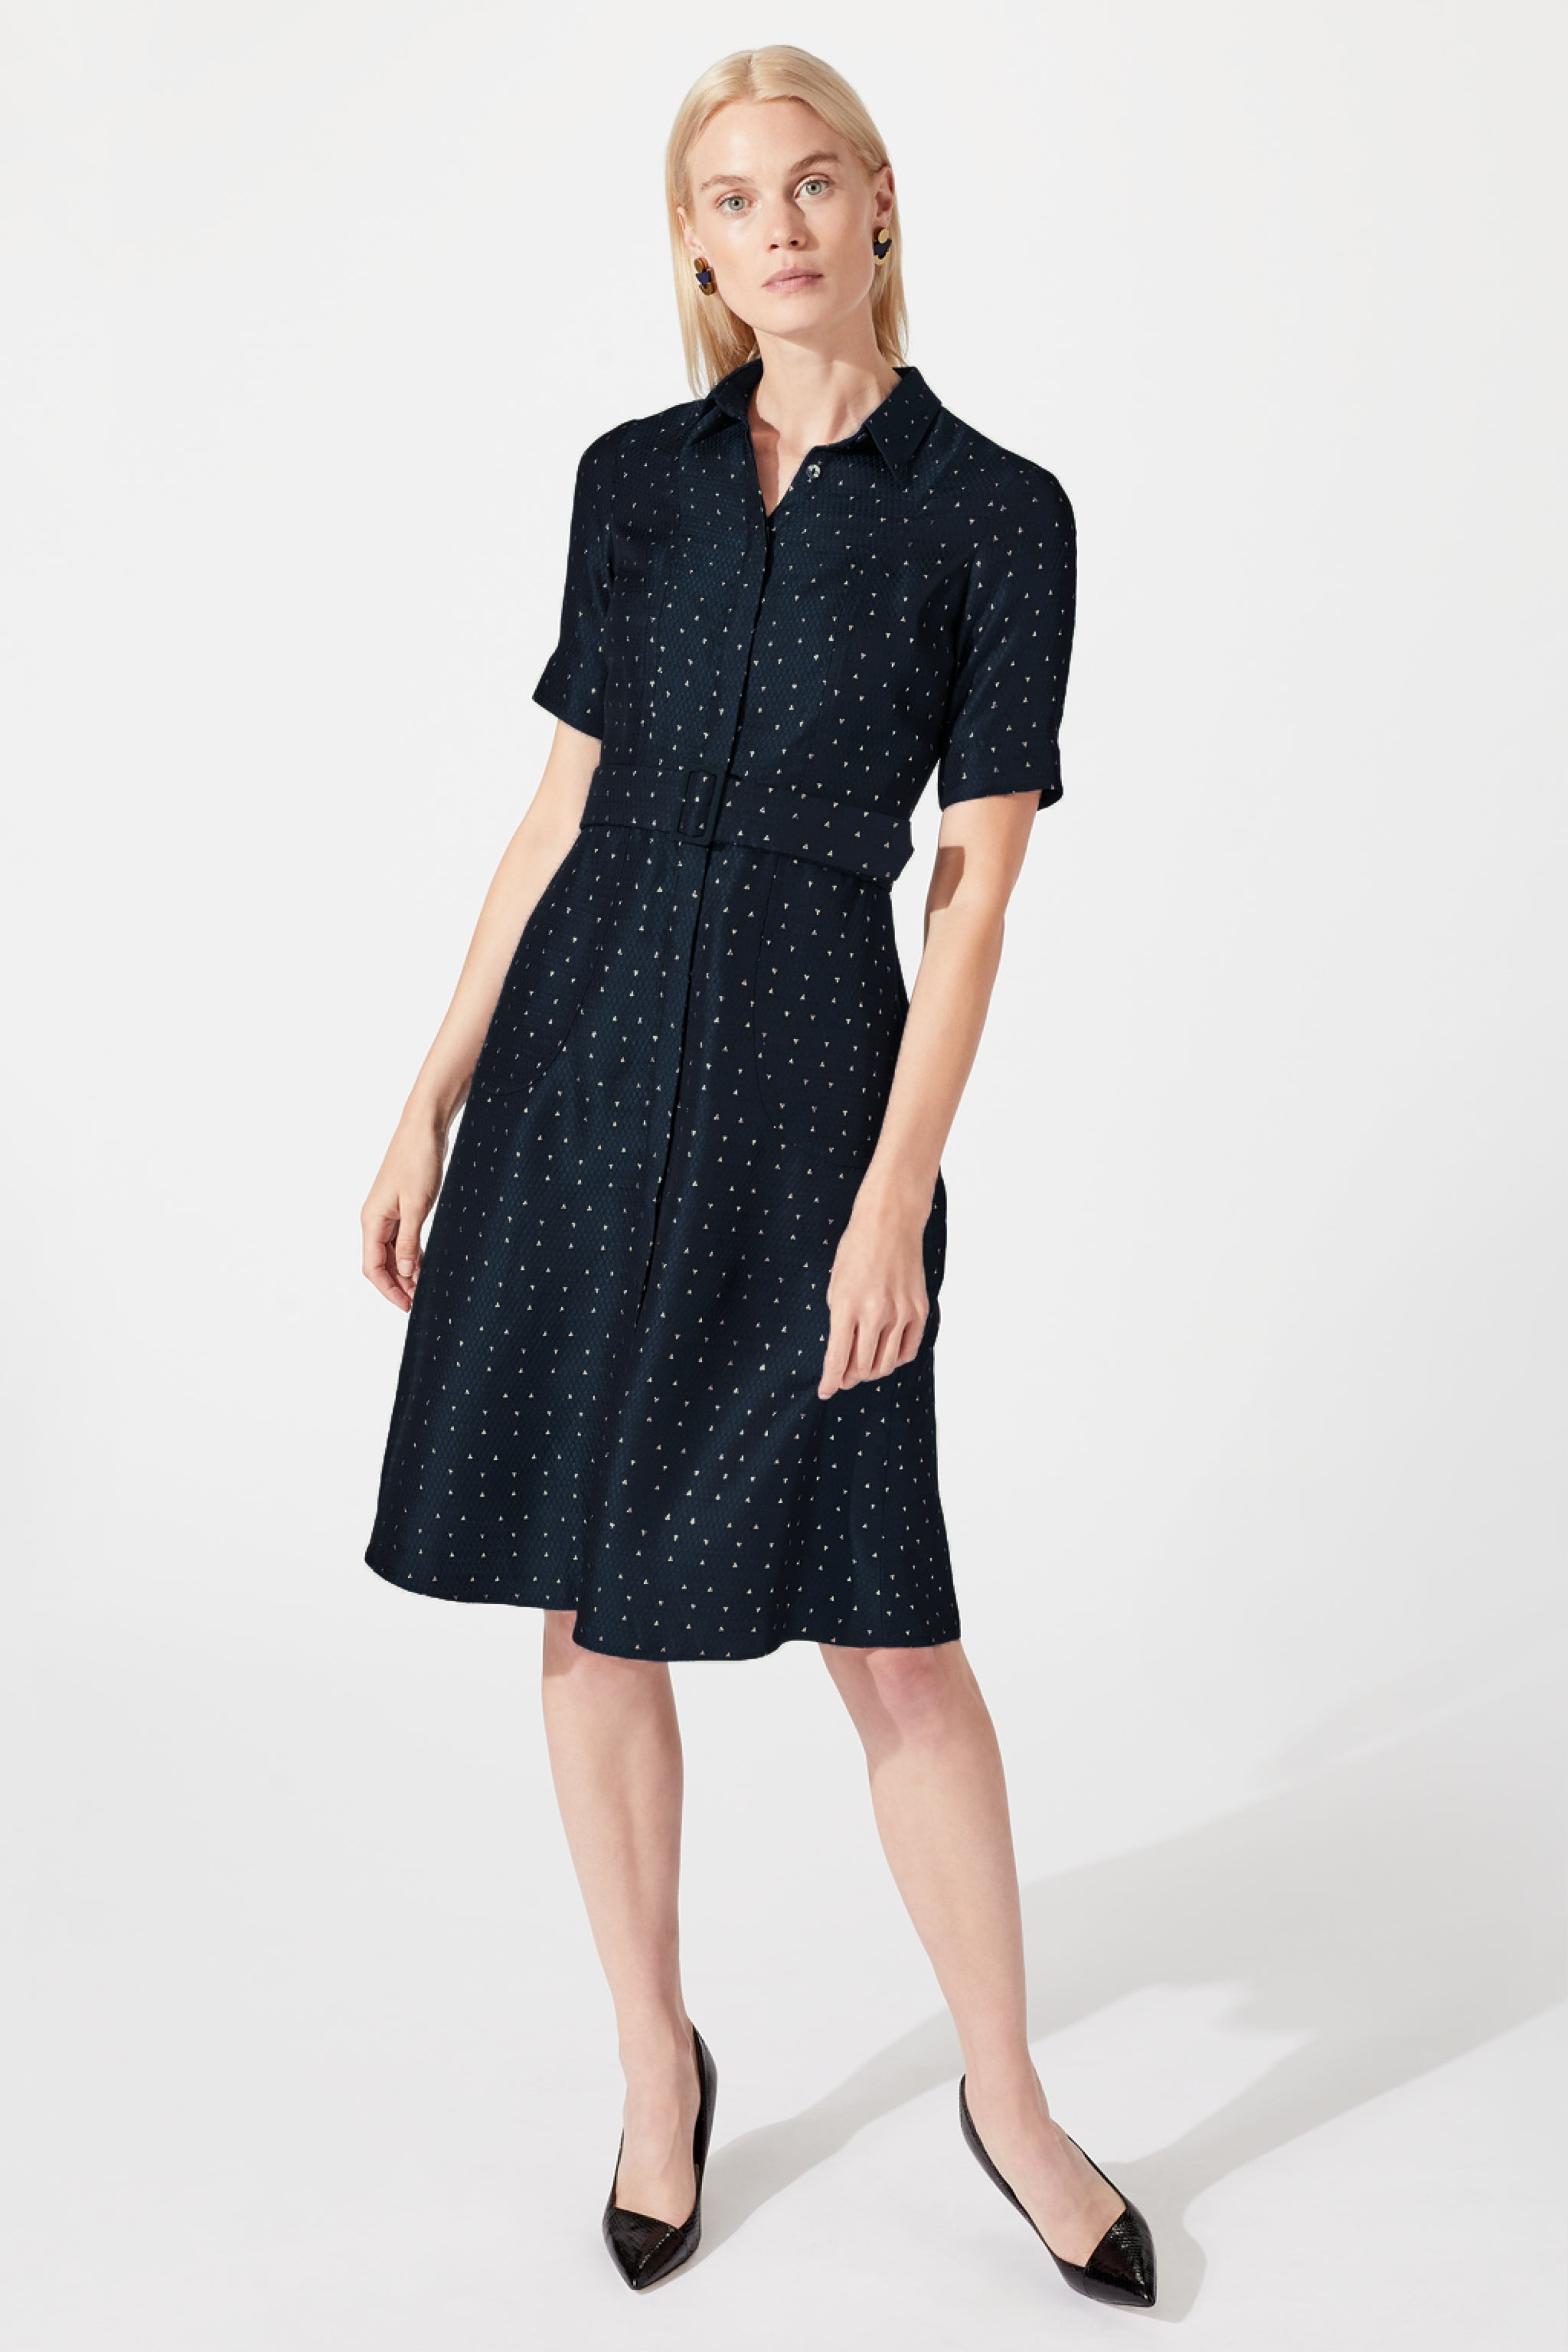 Belvedere Navy Metallic Jacquard Shirt Dress